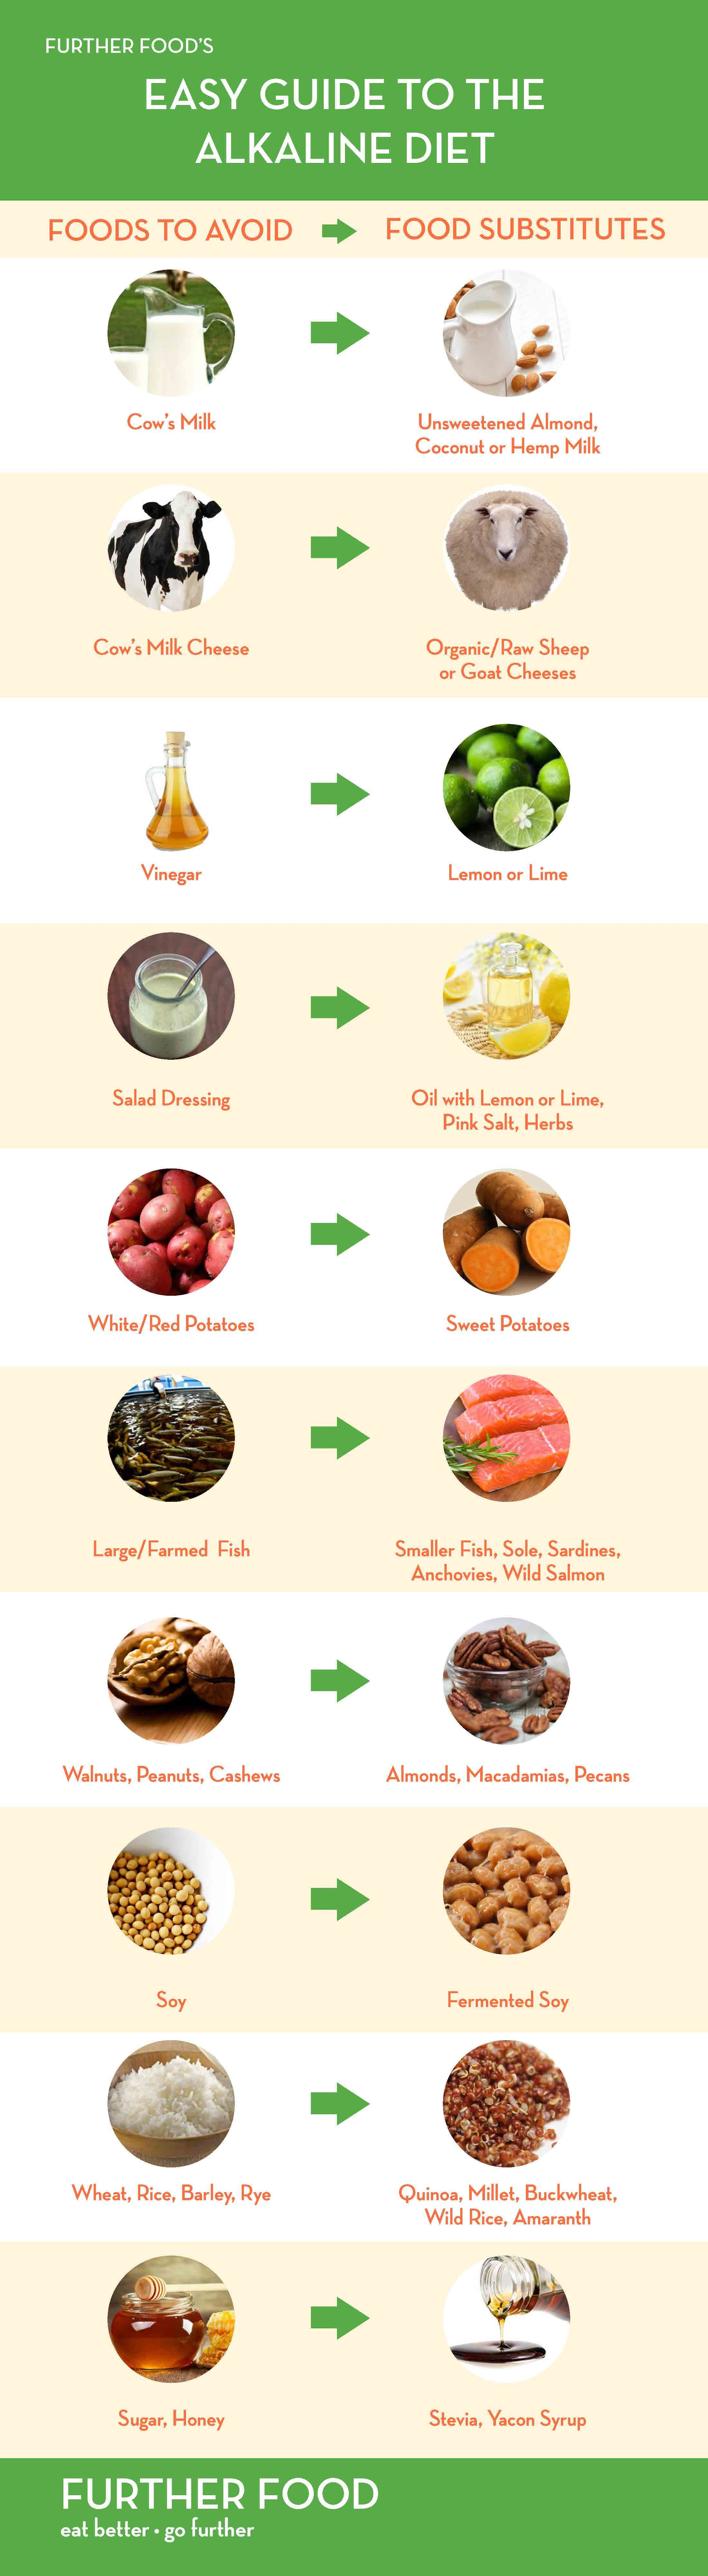 Demystifying The Alkaline T A Beginner S Guide Further Food